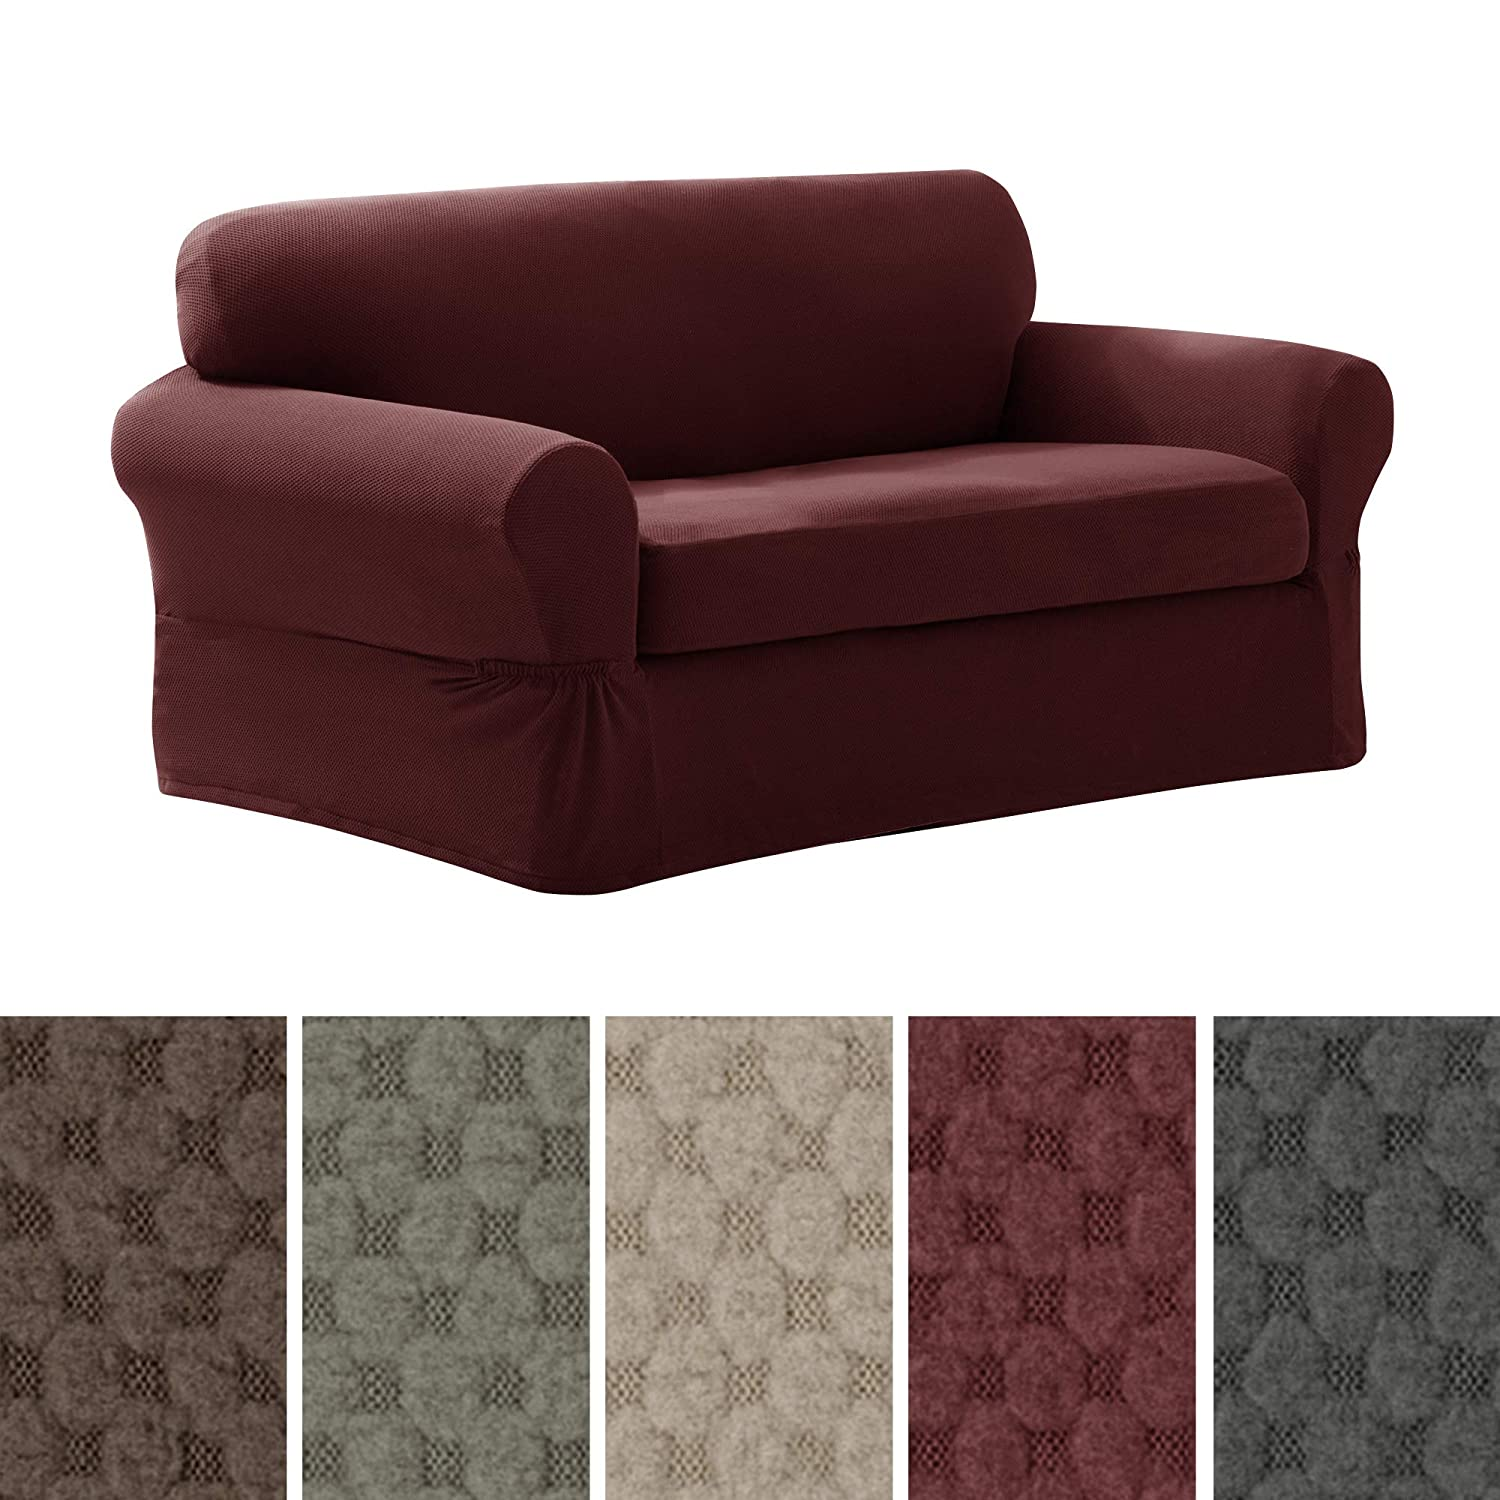 Maytex Pixel Stretch 2-Piece Slipcover Loveseat, Wine 4300512